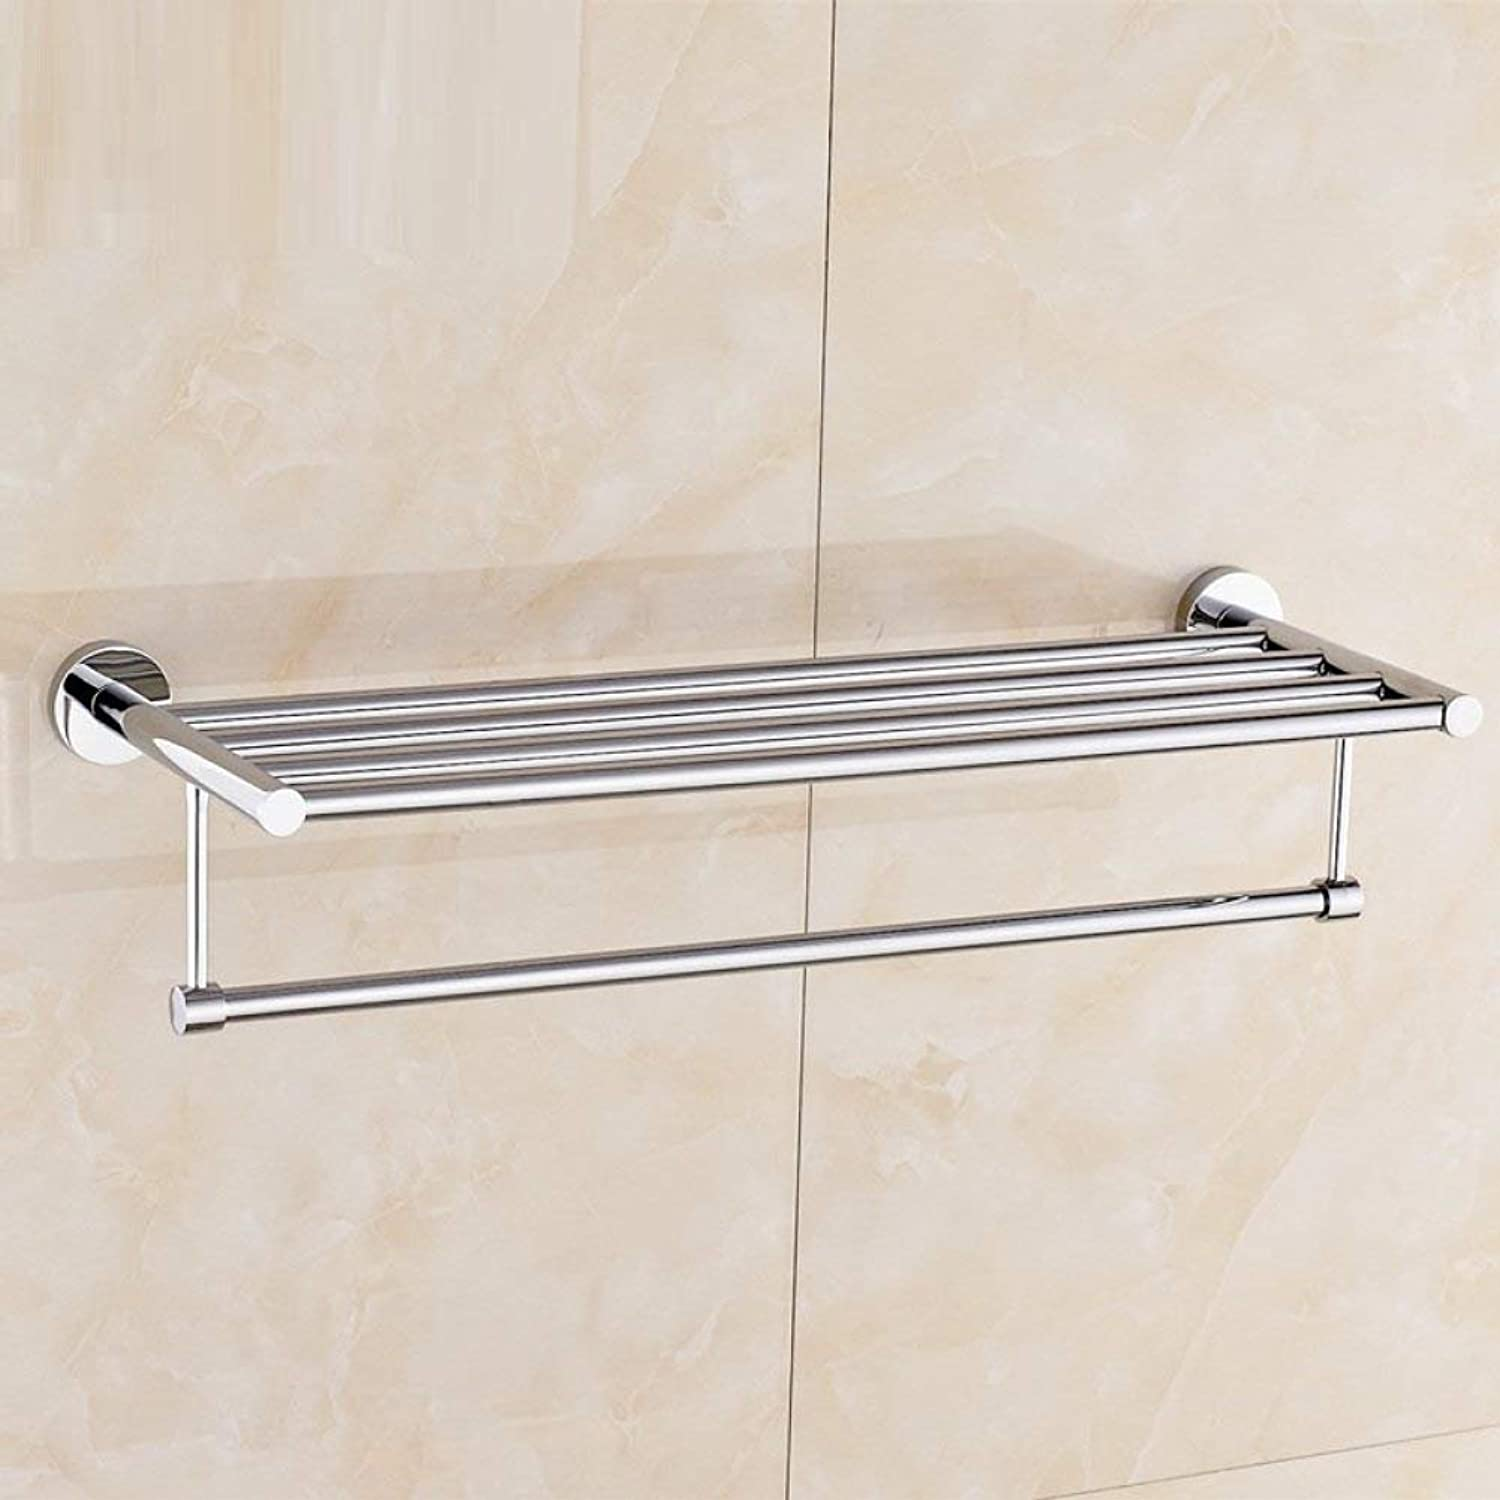 Bathroom Top of Range Dry-Towels Stainless Steel Flat Products, The Plating, Drilling, The Inssizetion and The Renovation of bathrooms of The Hotel Home Dry-Towels,Silver,Length 60cm